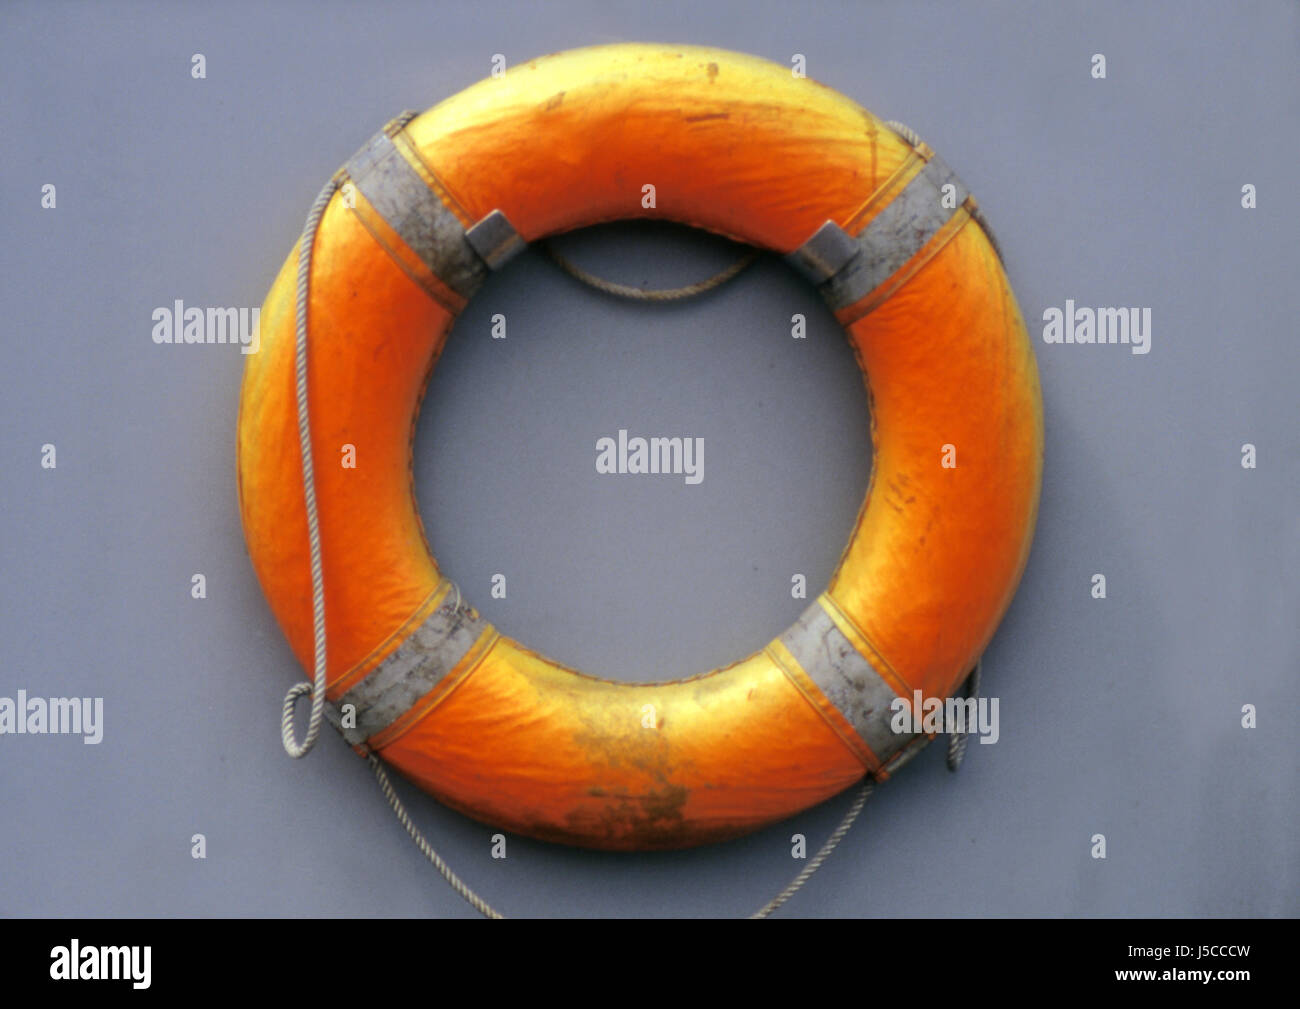 seafaring maritime rescue distress at sea lifebelt assistance help support aid - Stock Image